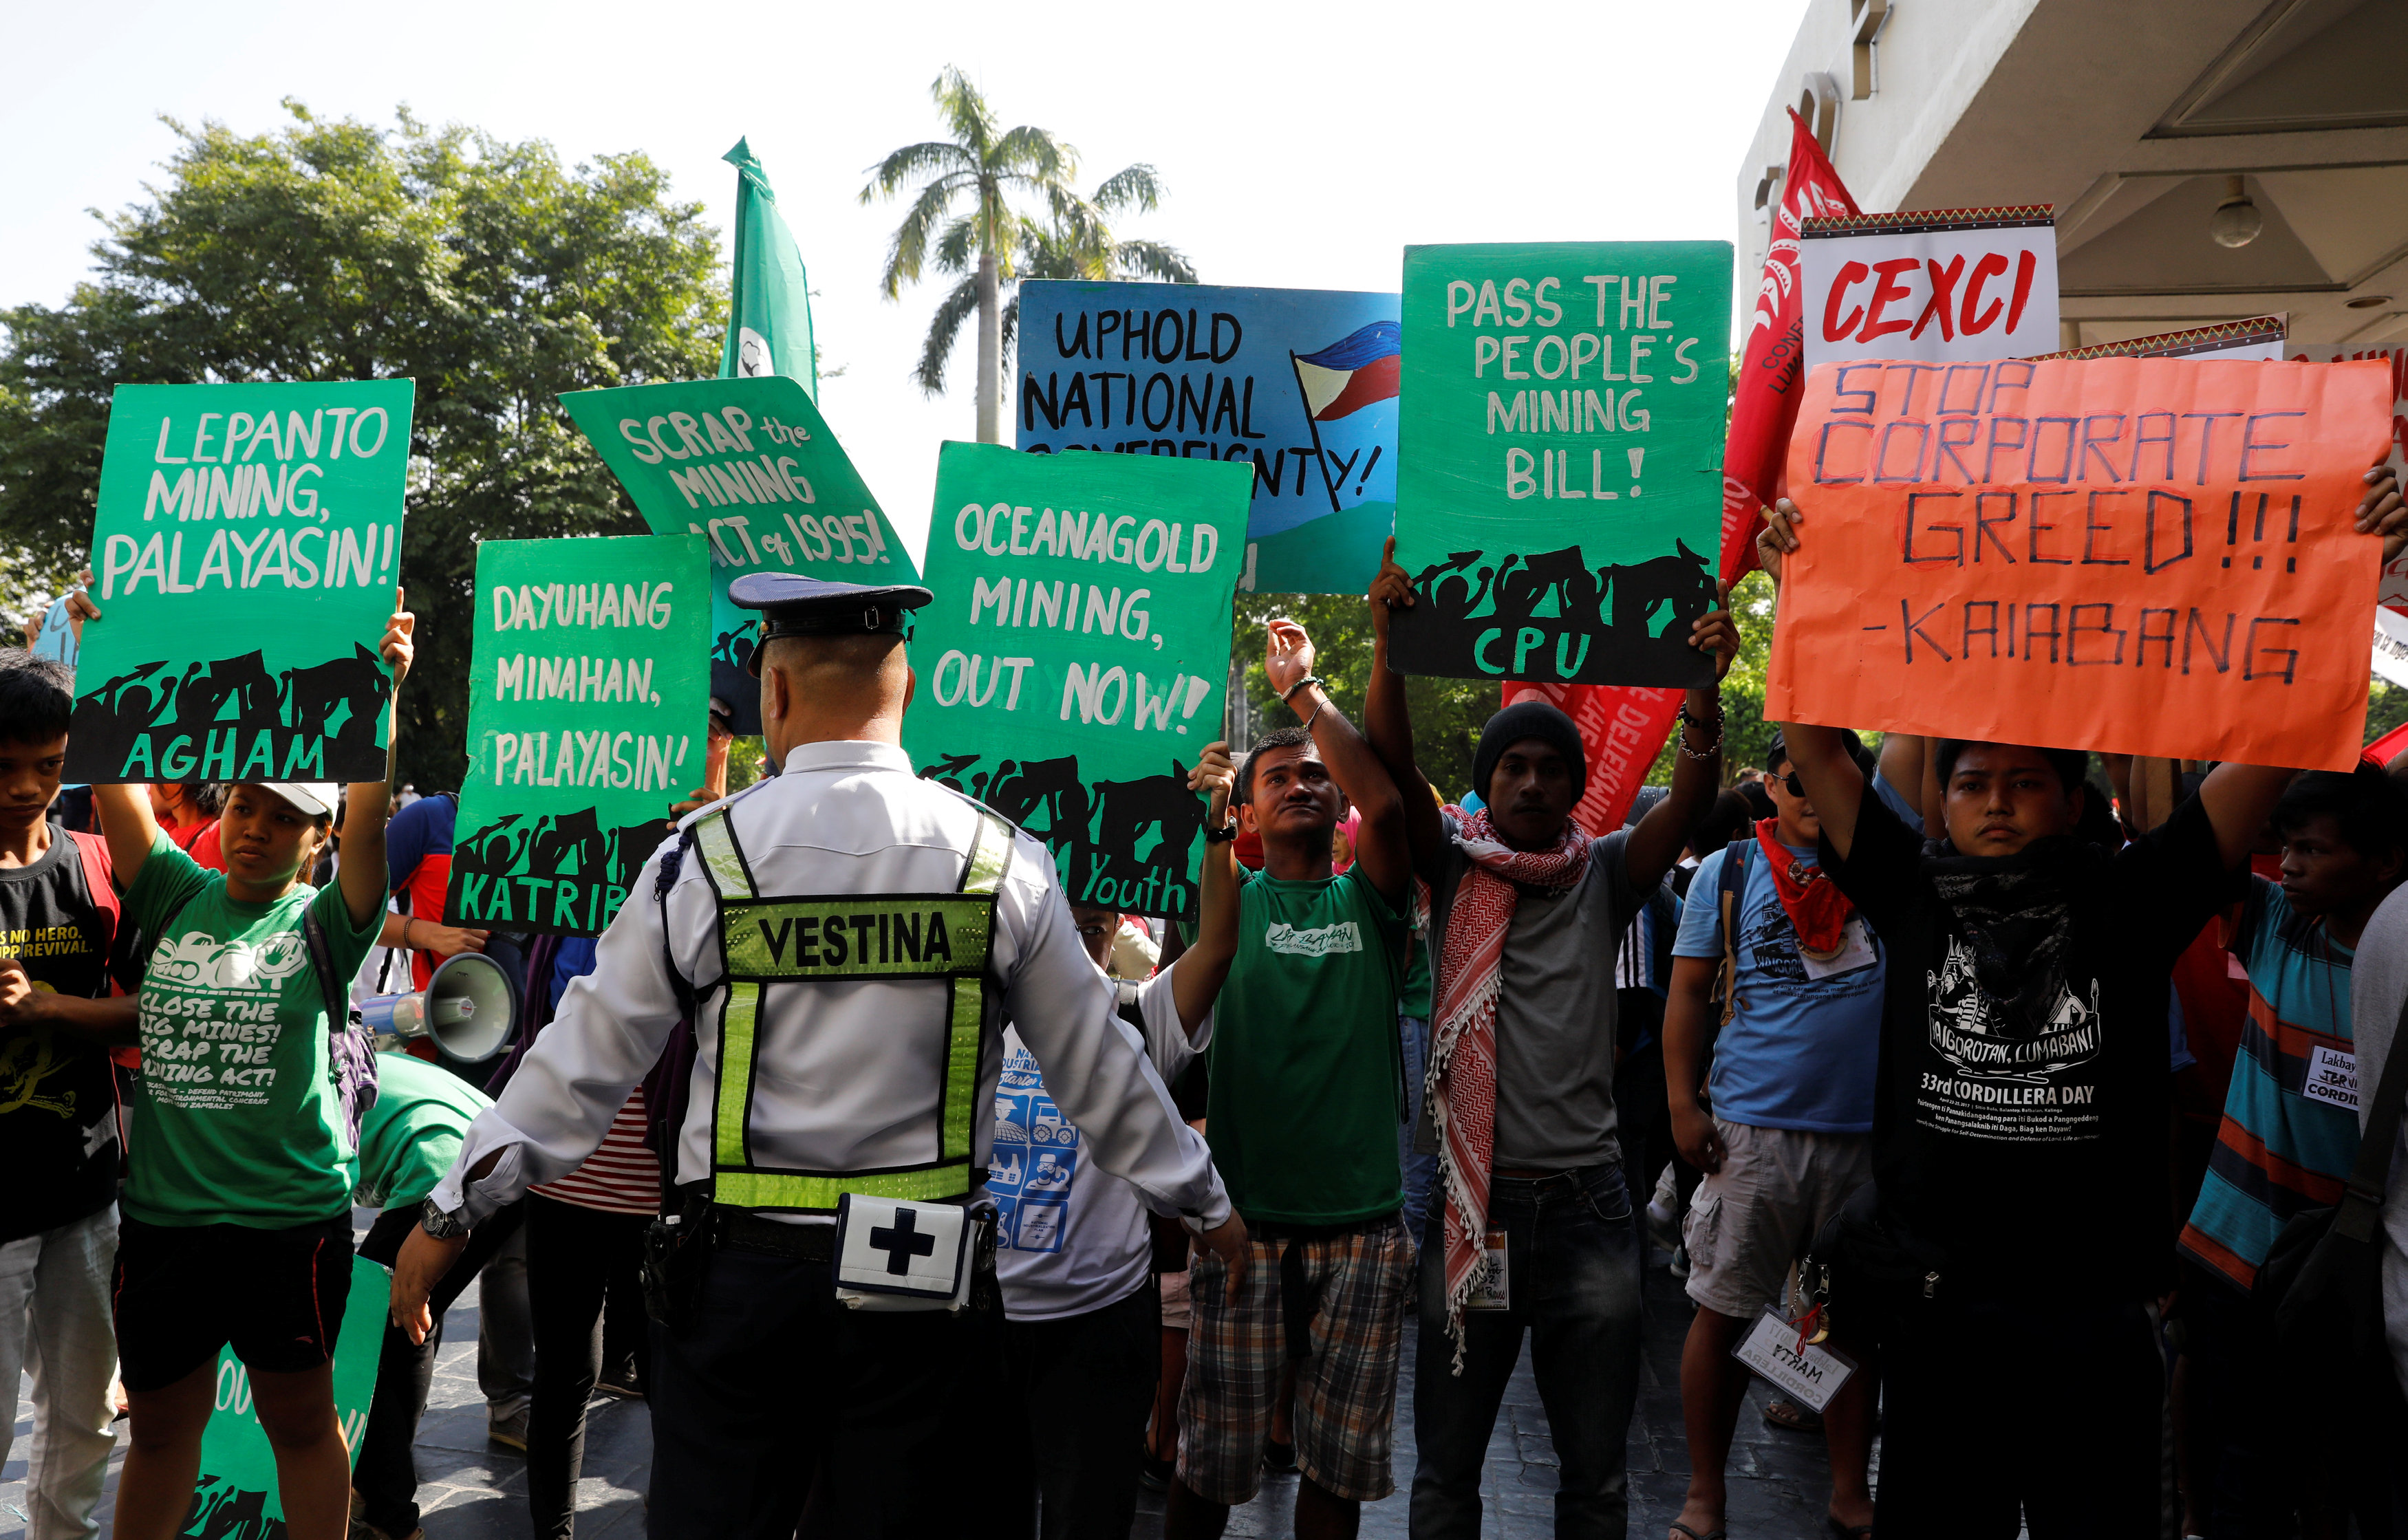 Protesters clash with security forces at Philippines mining event, demand halt to extraction